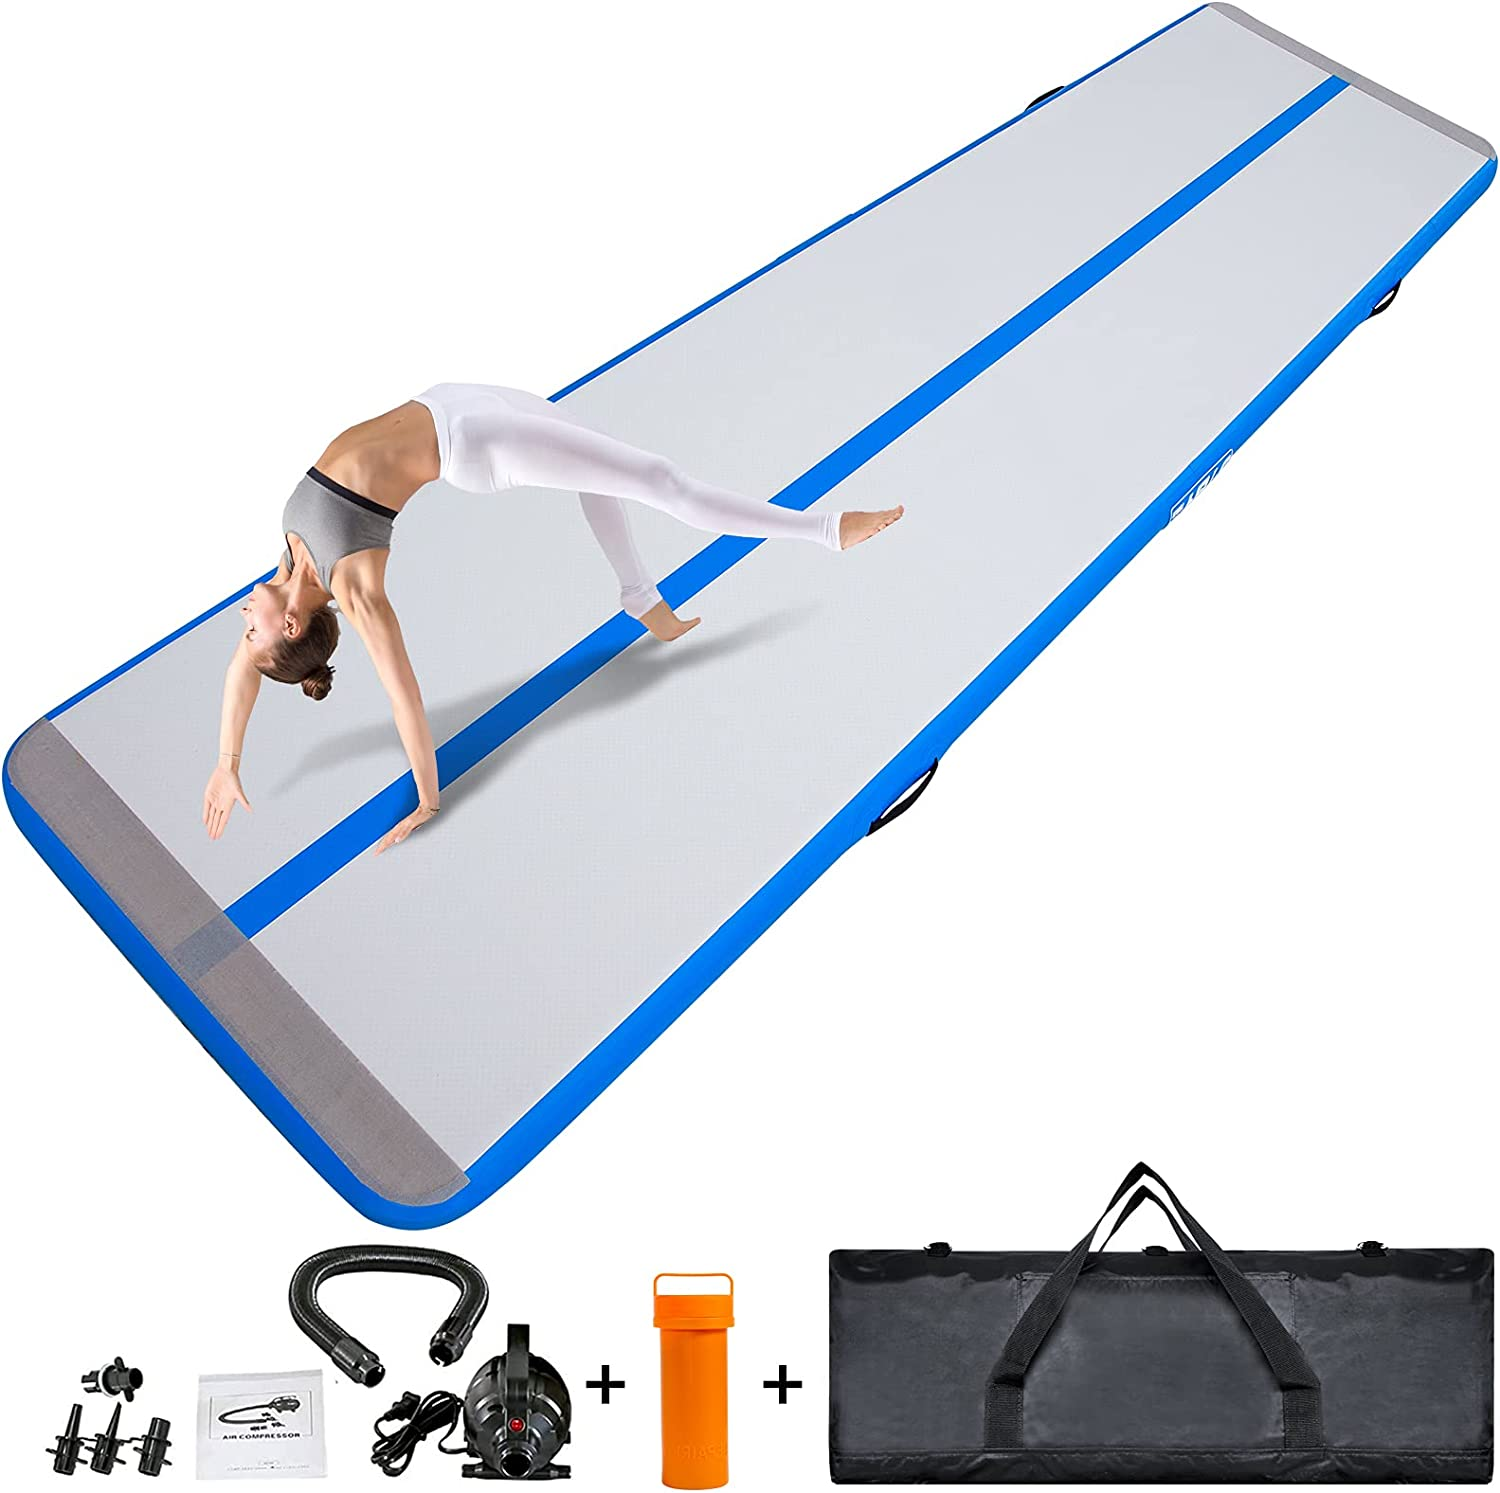 DAMA 10ft 13ft In stock Max 78% OFF 16ft Inflatable Mats Tumbling Home for Gymnastics